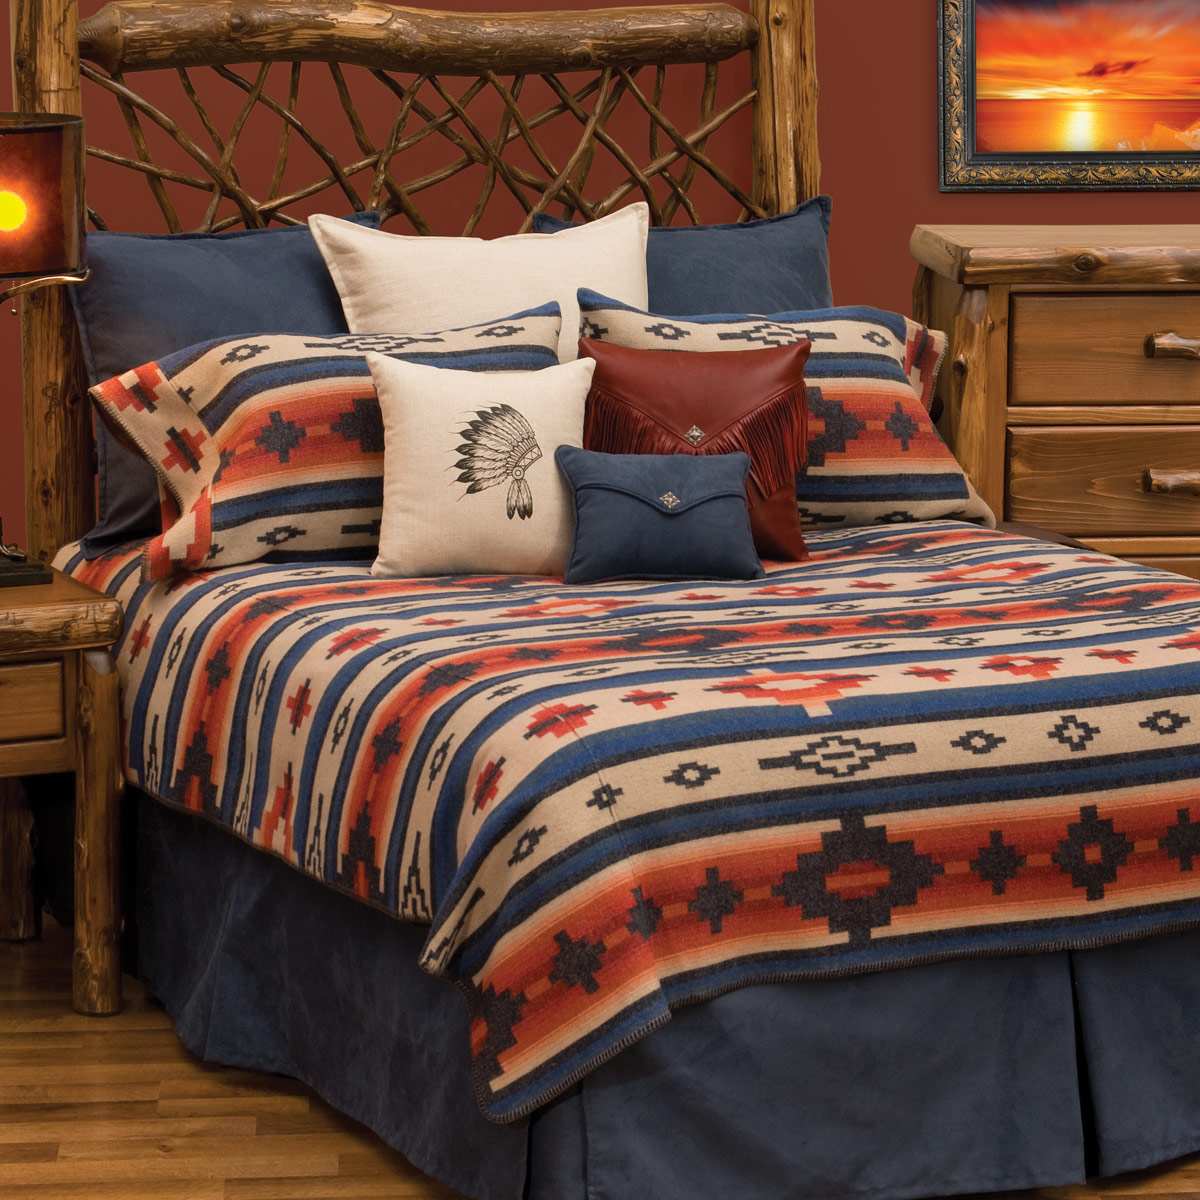 Redrock Canyon Basic Bed Set - Queen